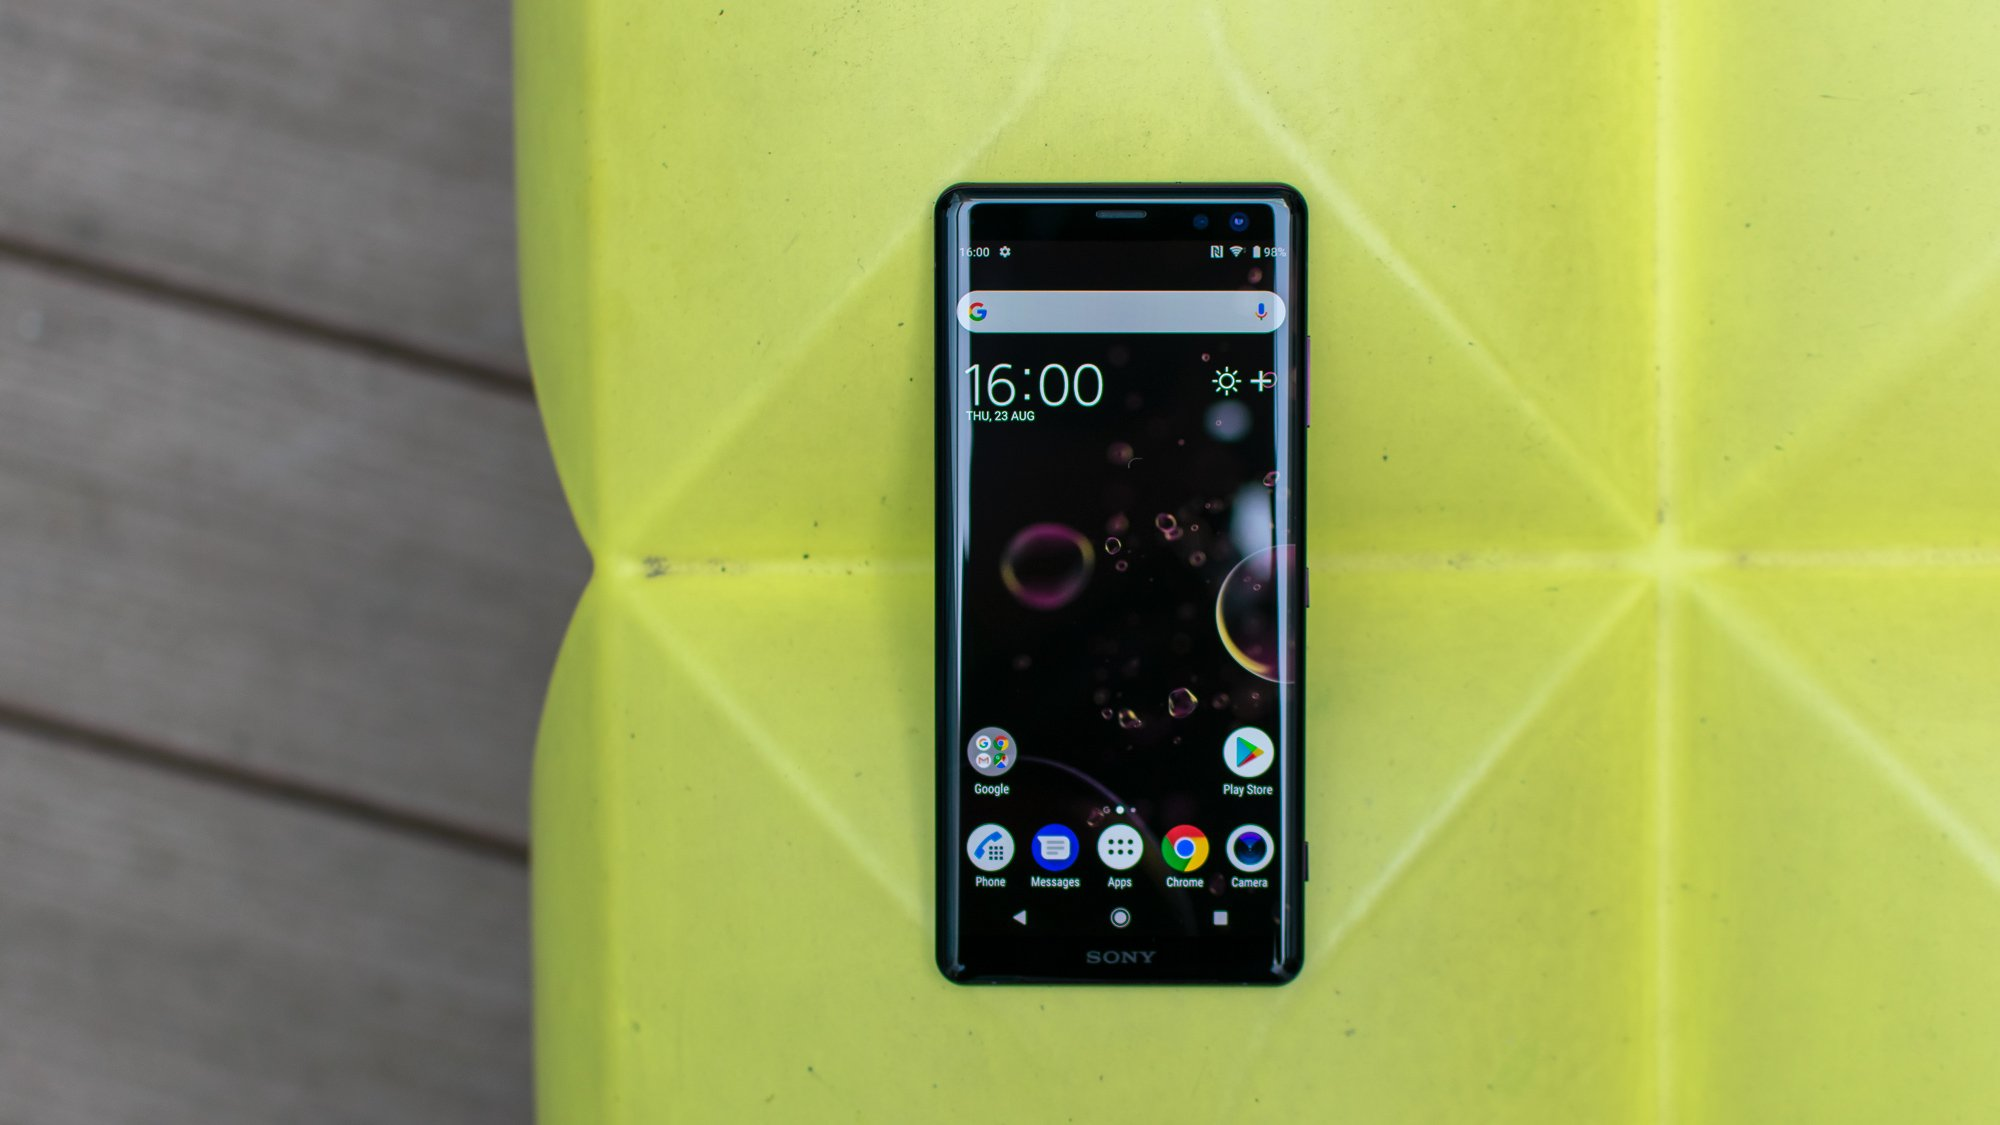 Sony Xperia XZ3 review: Get Sony's OLED flagship for zero upfront